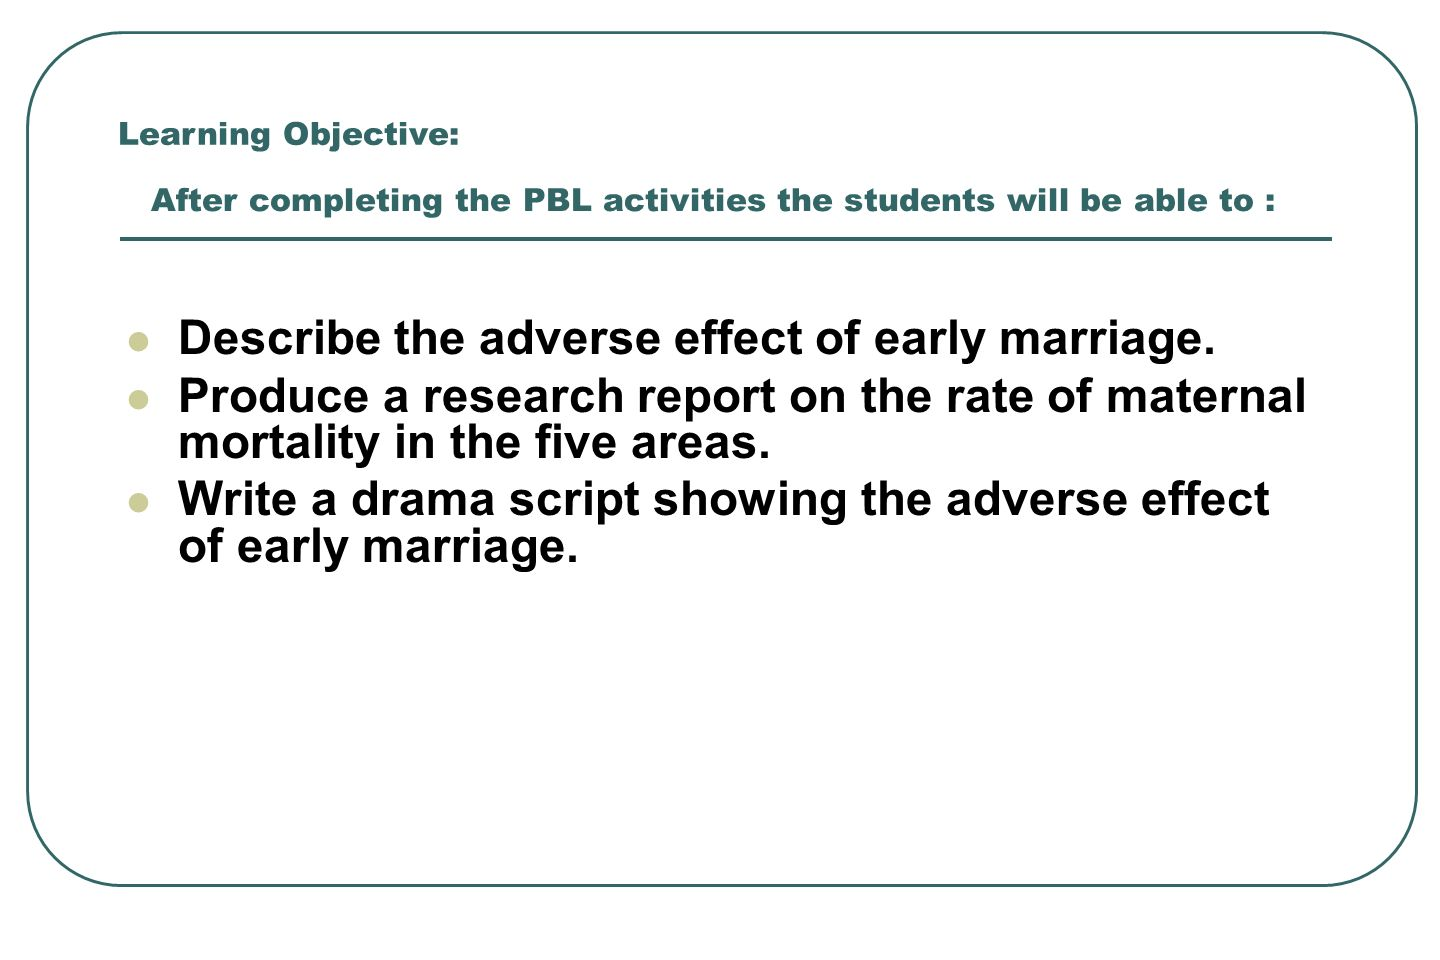 After completing the PBL activities the students will be able to :